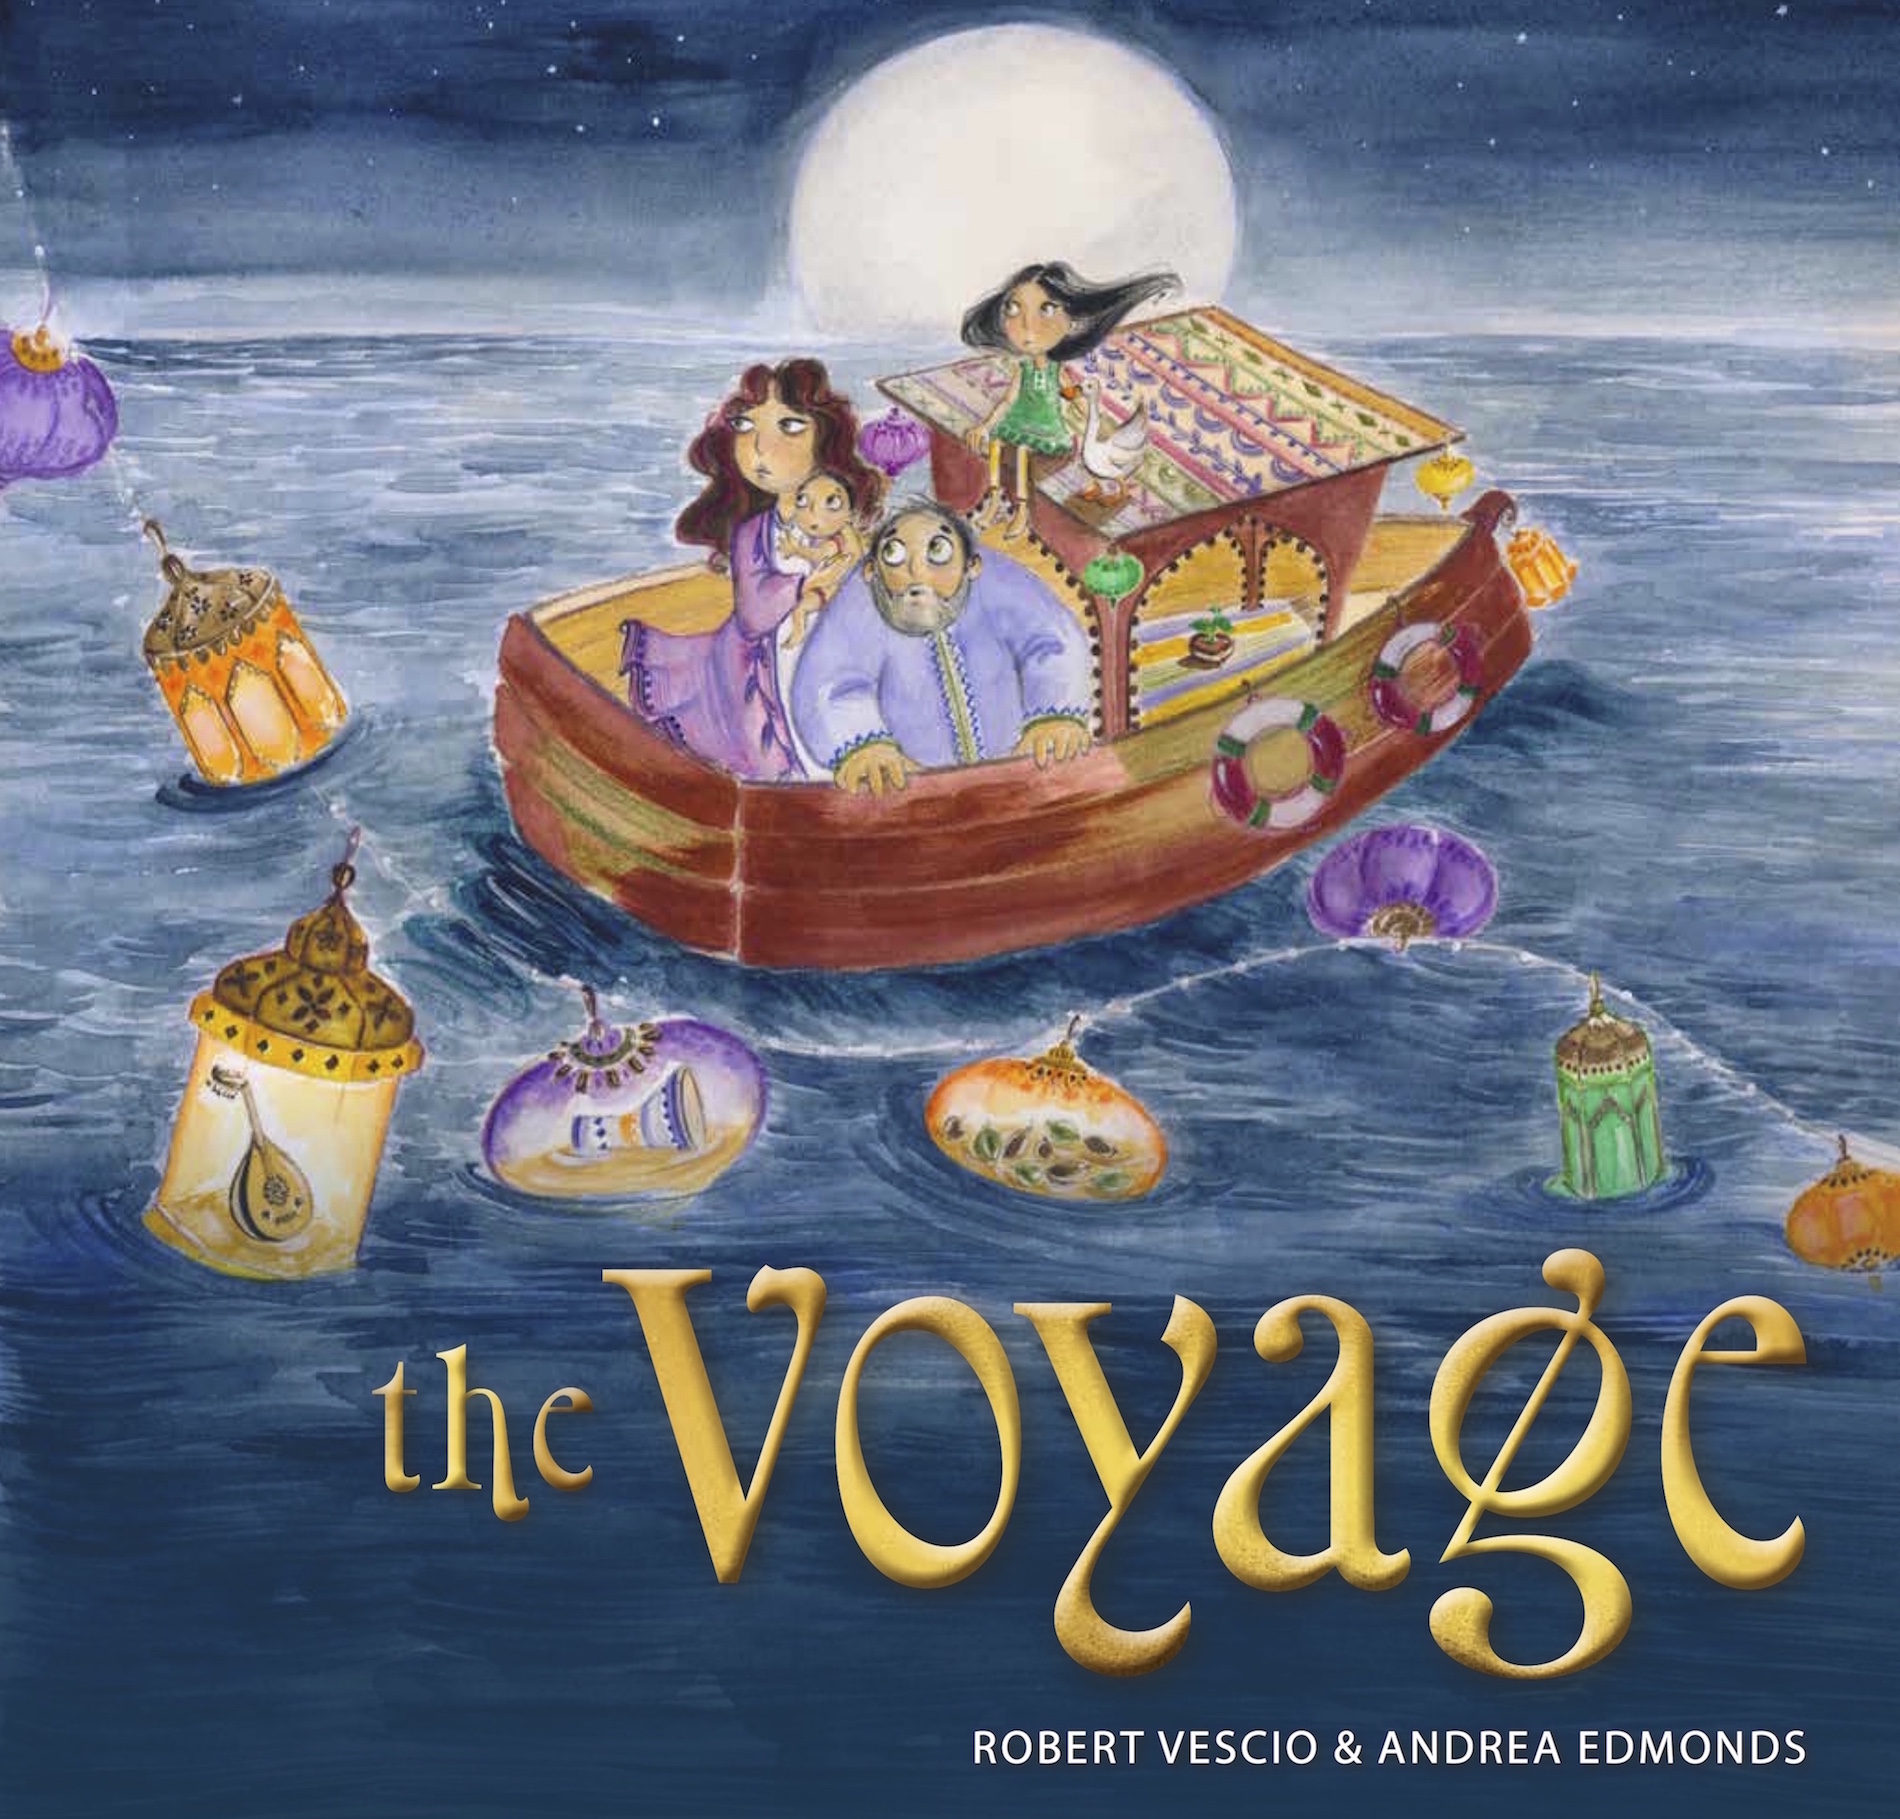 The Voyage cover gold font 2.jpg